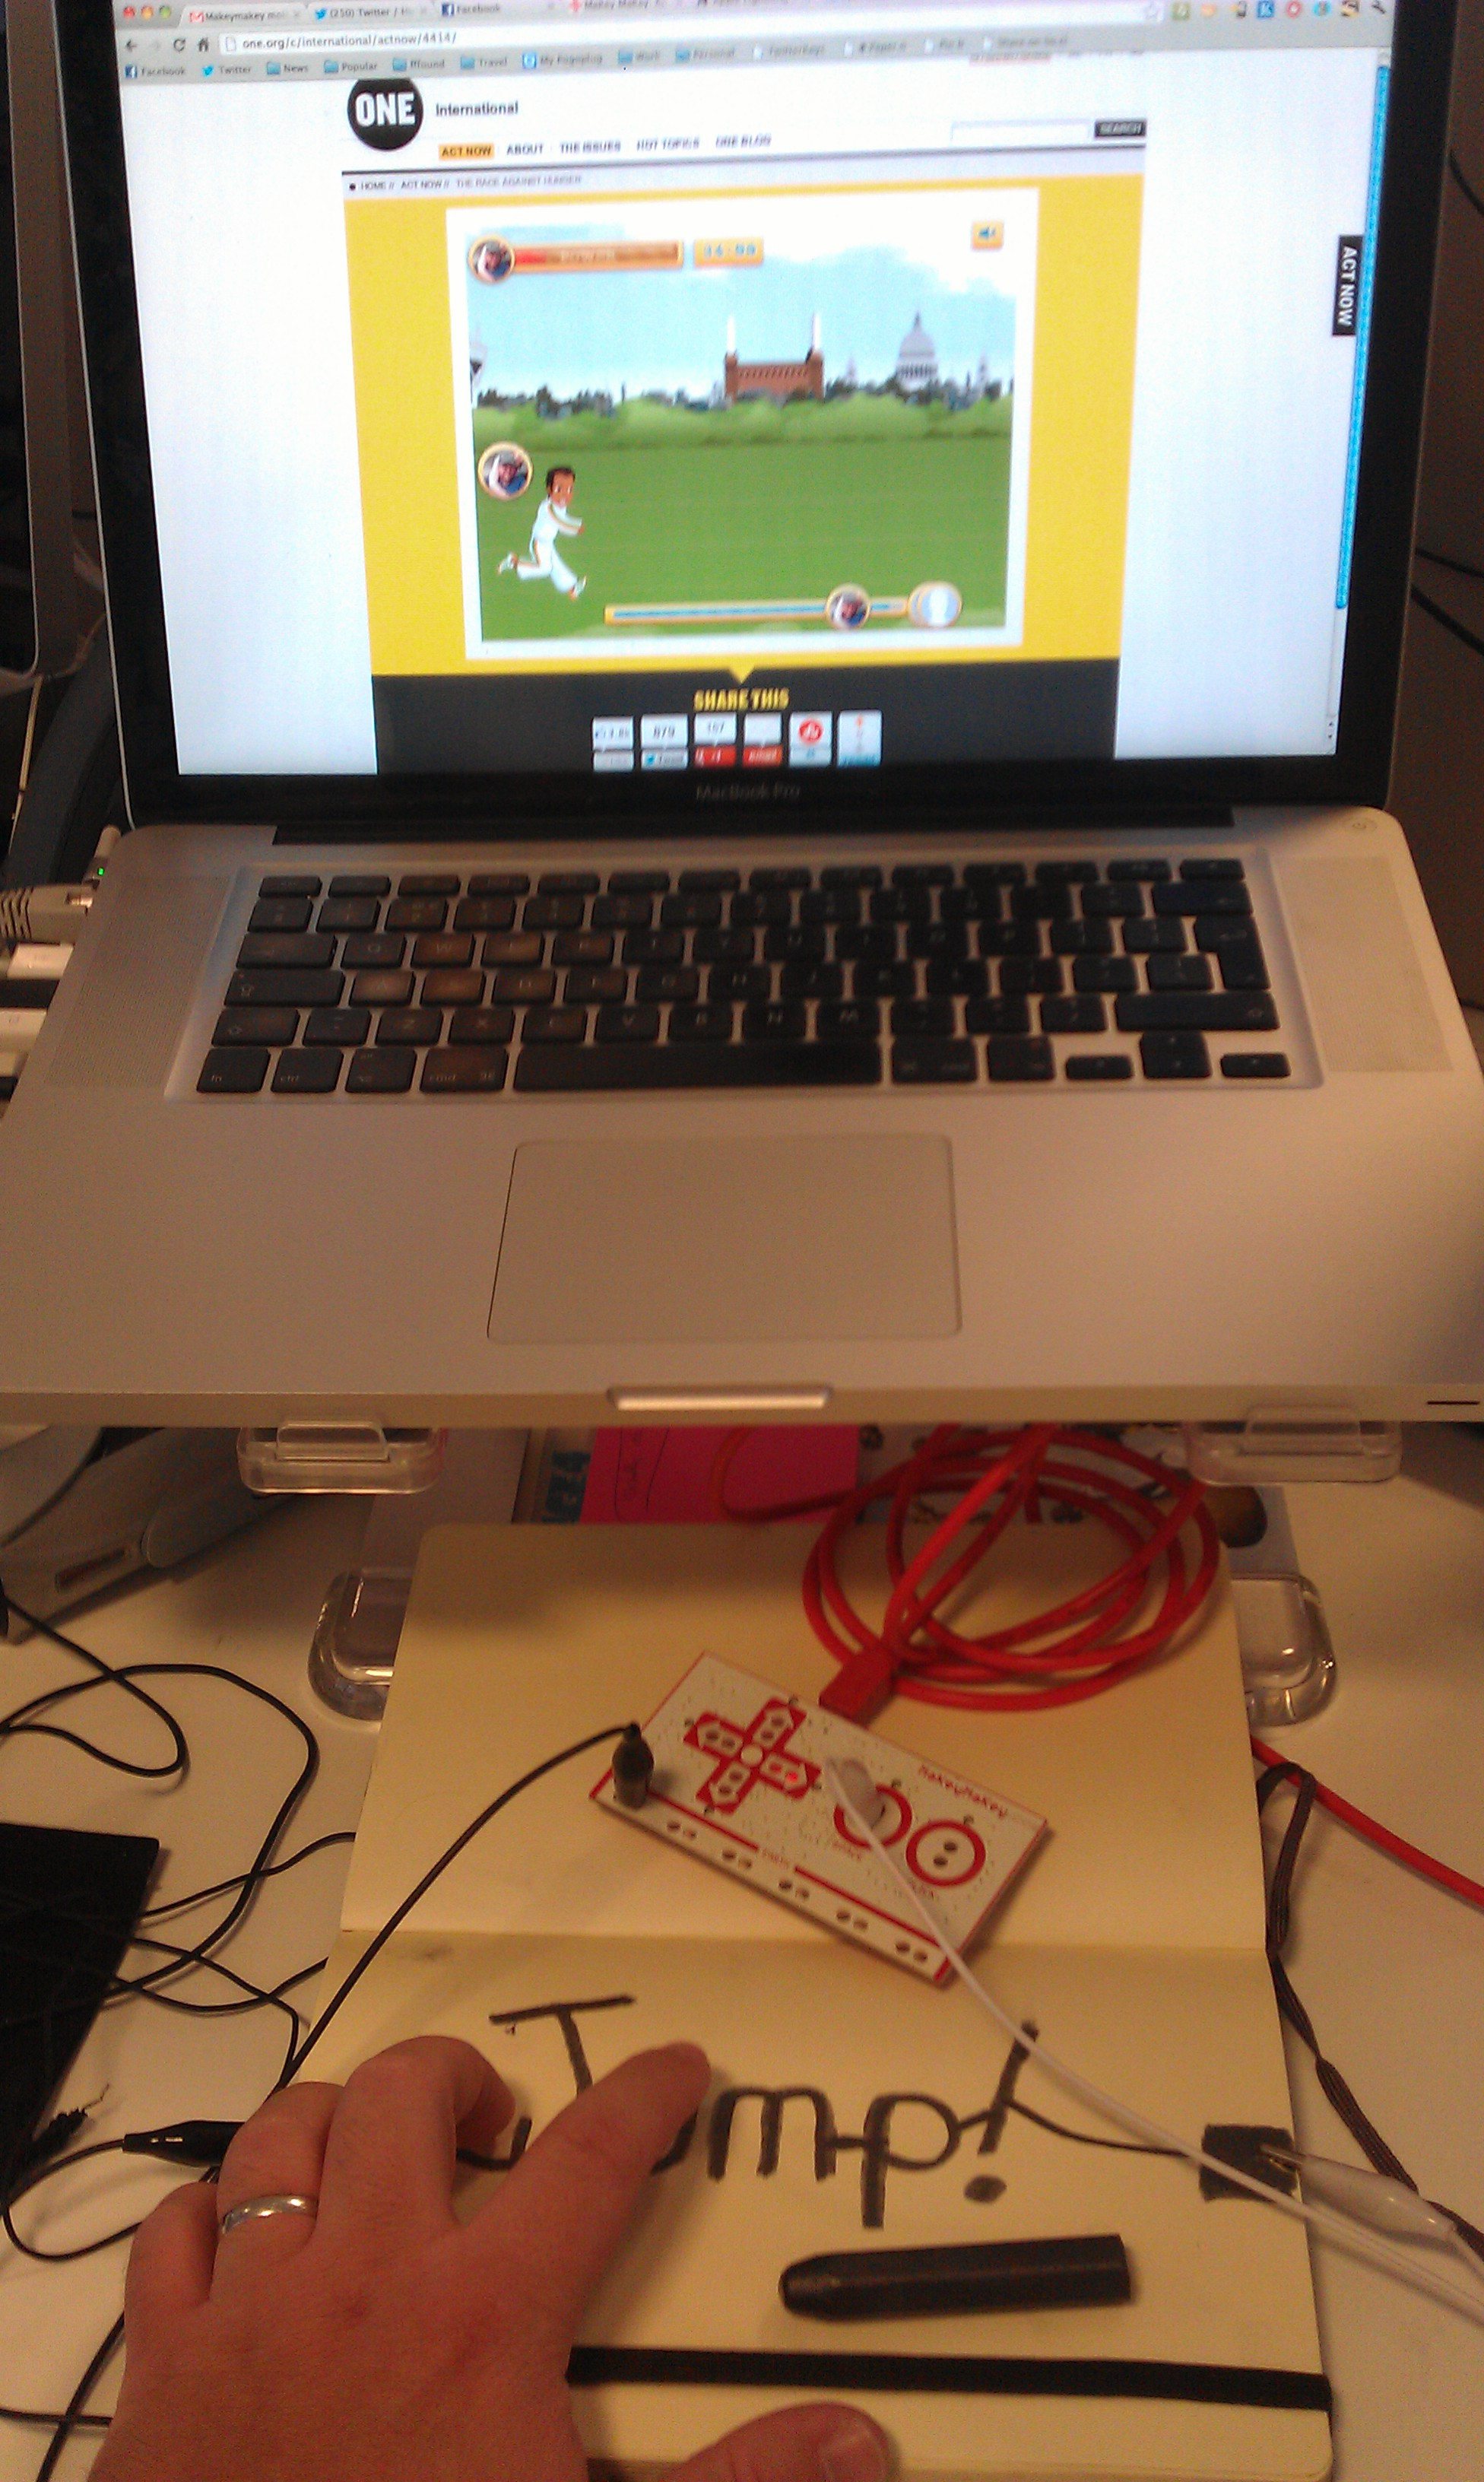 Playing the race against hunger game with a MaKey MaKey